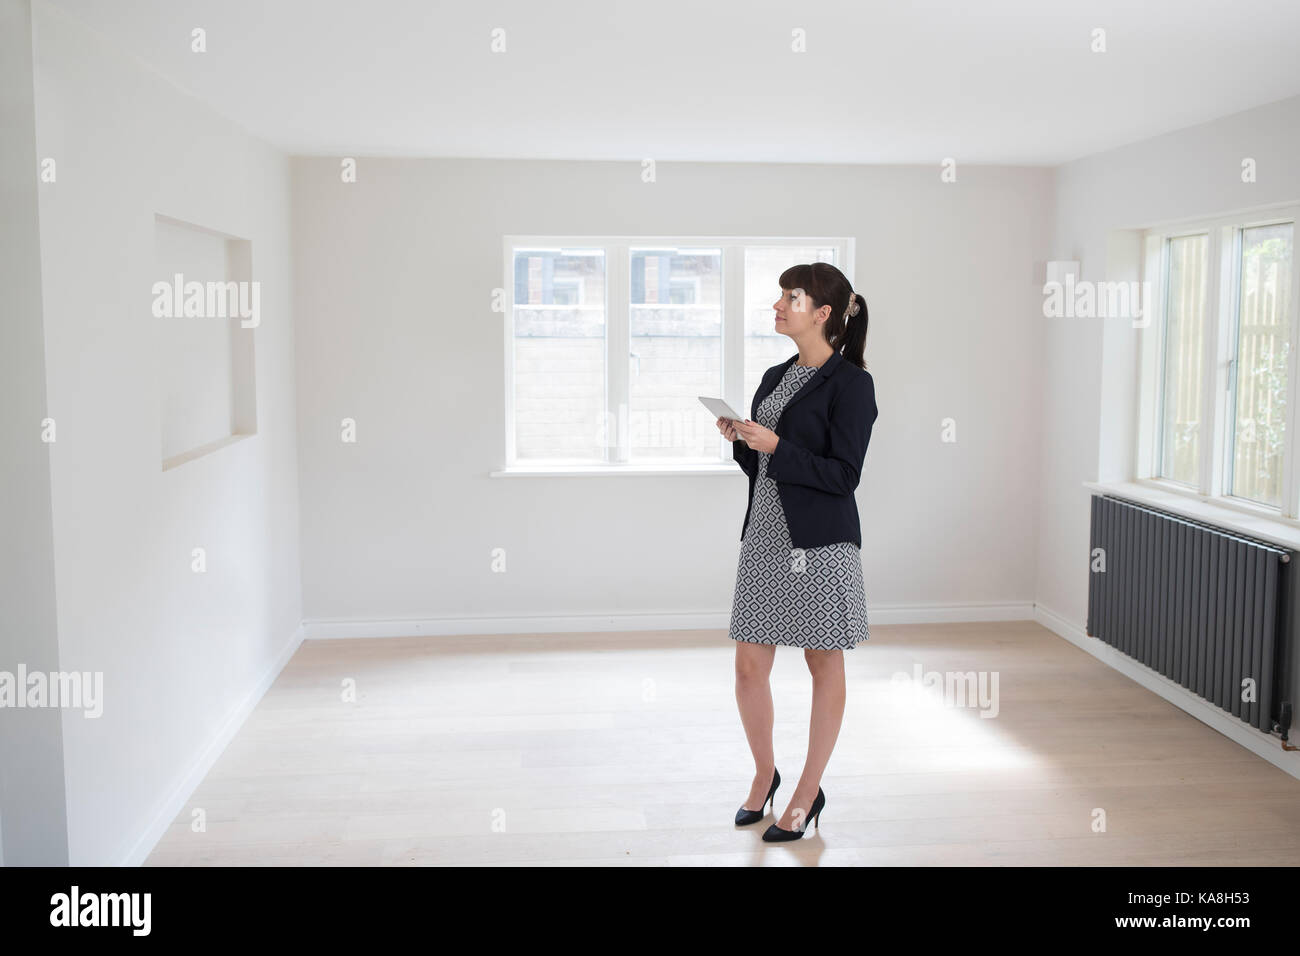 Female Estate Agent With Digital Tablet Looking Around Vacant Property For Valuation - Stock Image